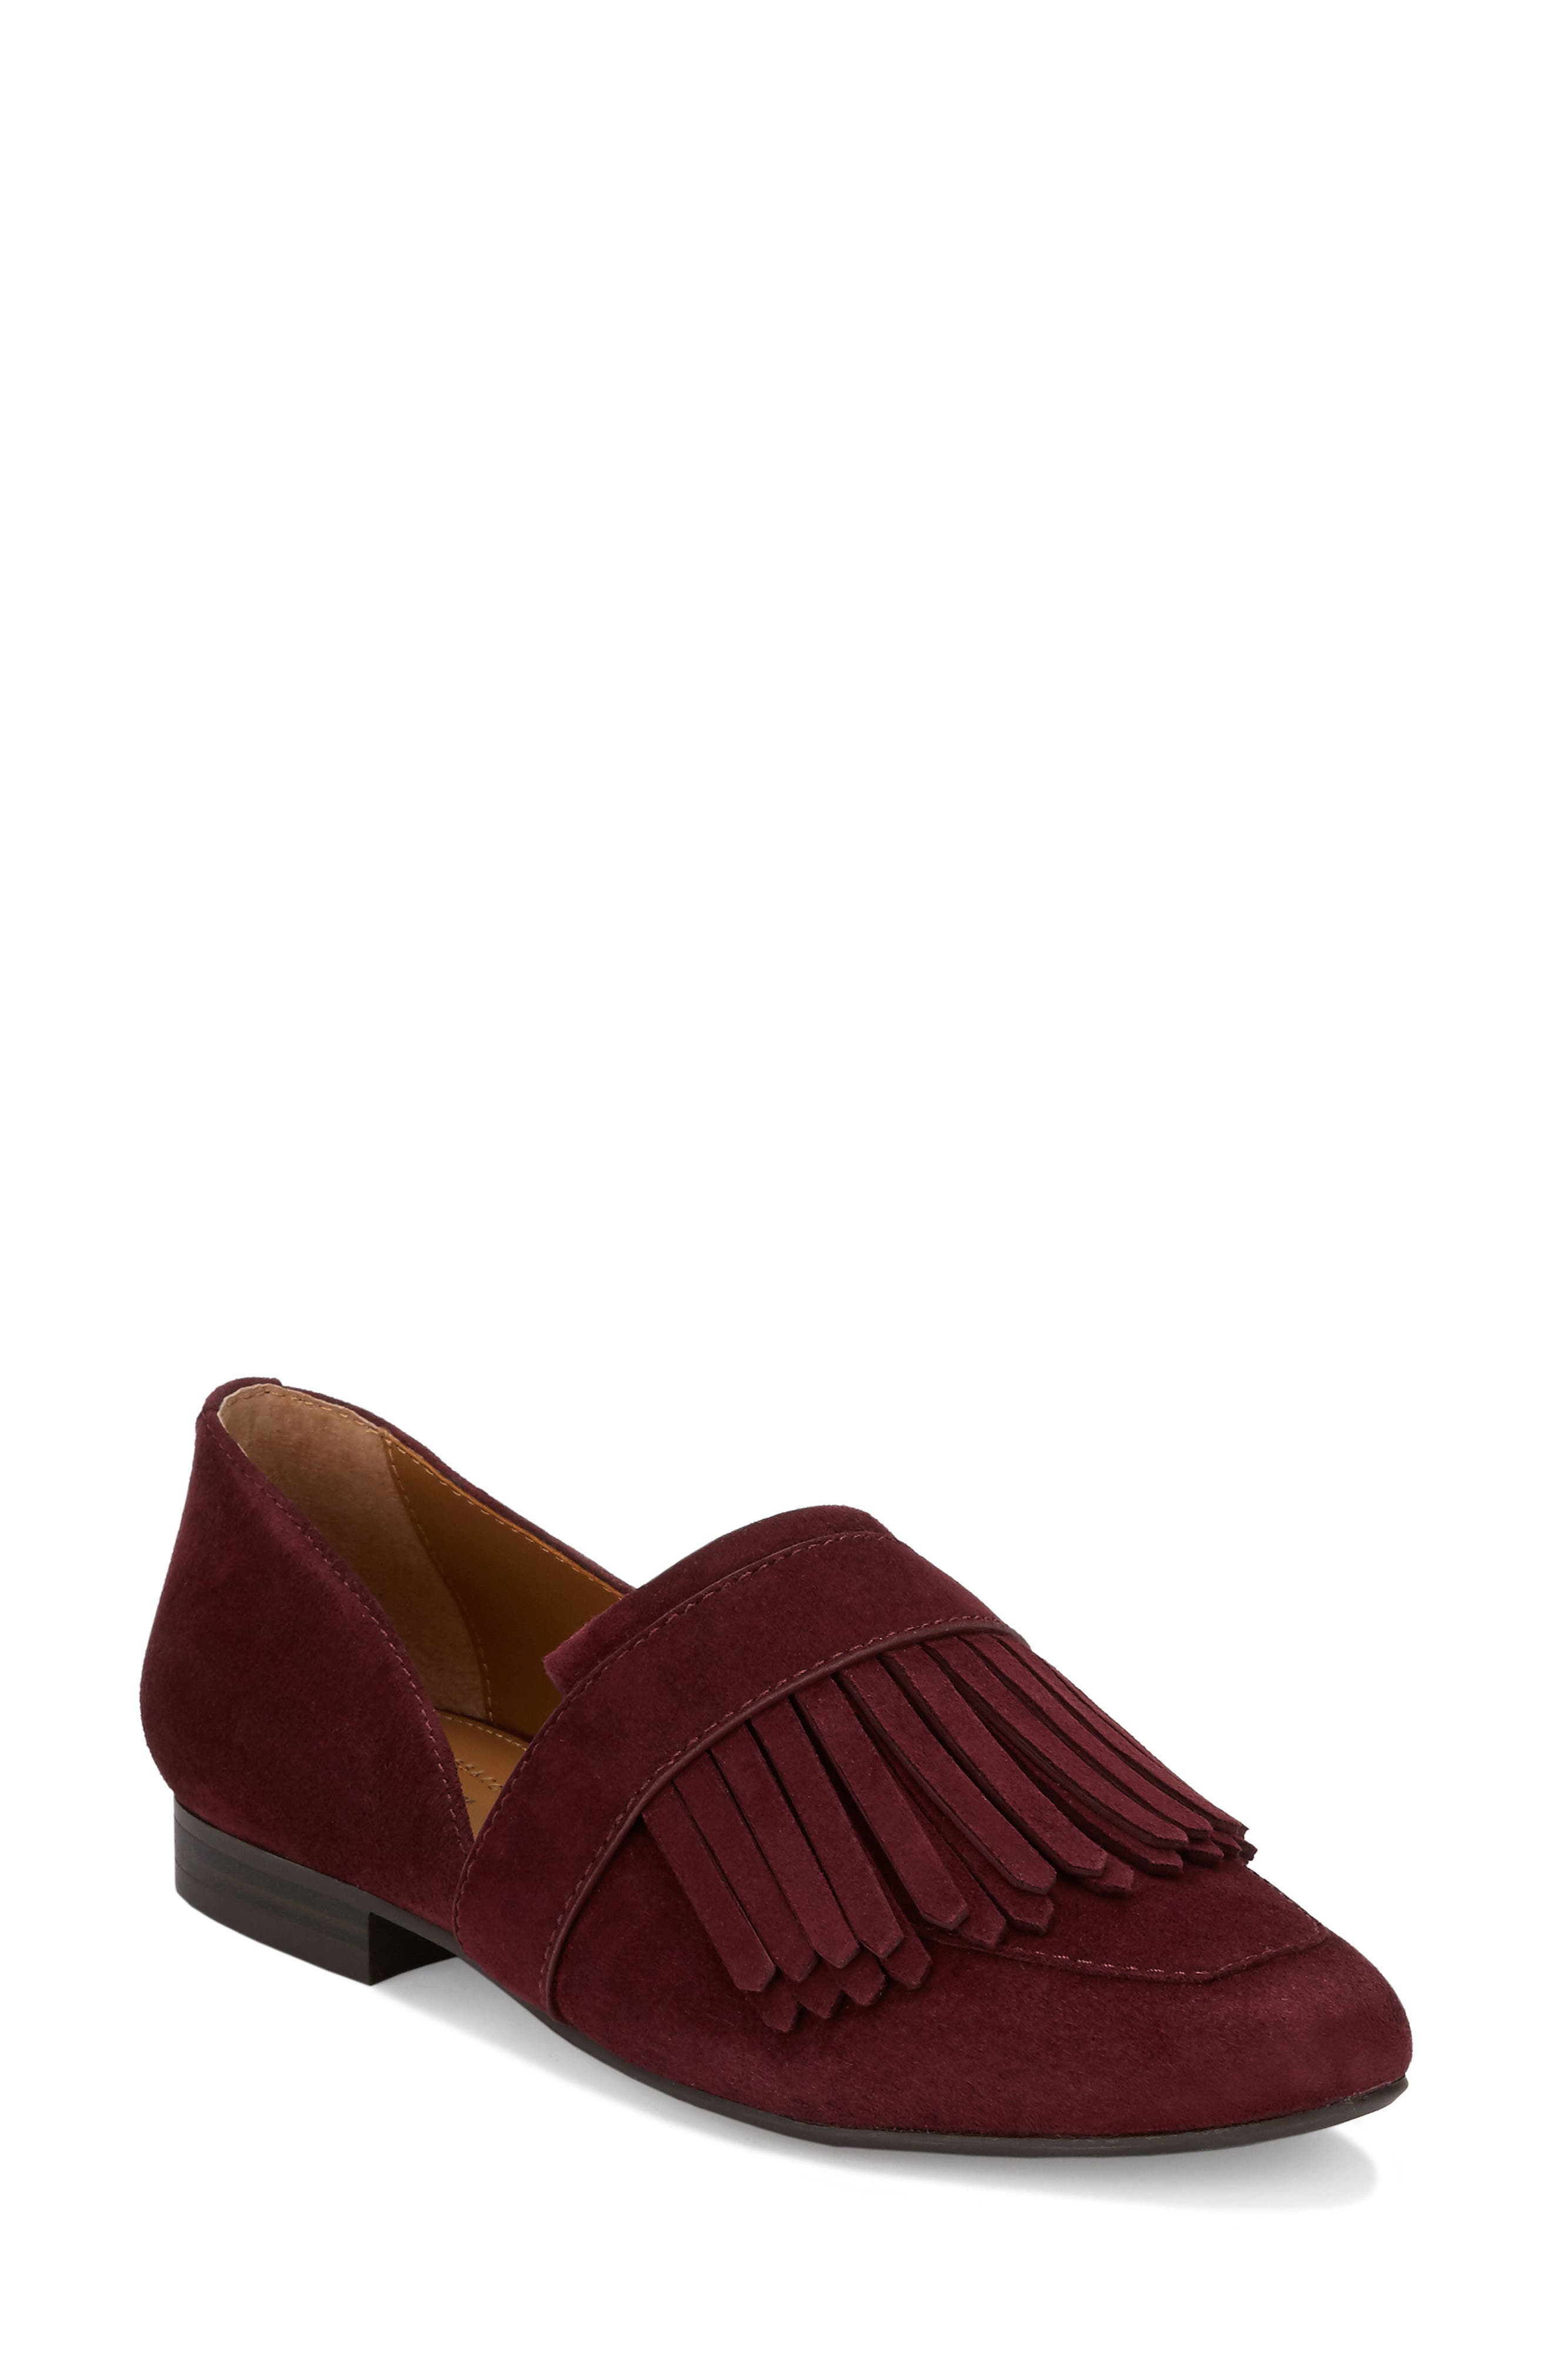 'Harlow' Kiltie Leather Loafer,                         Main,                         color, Wine Suede